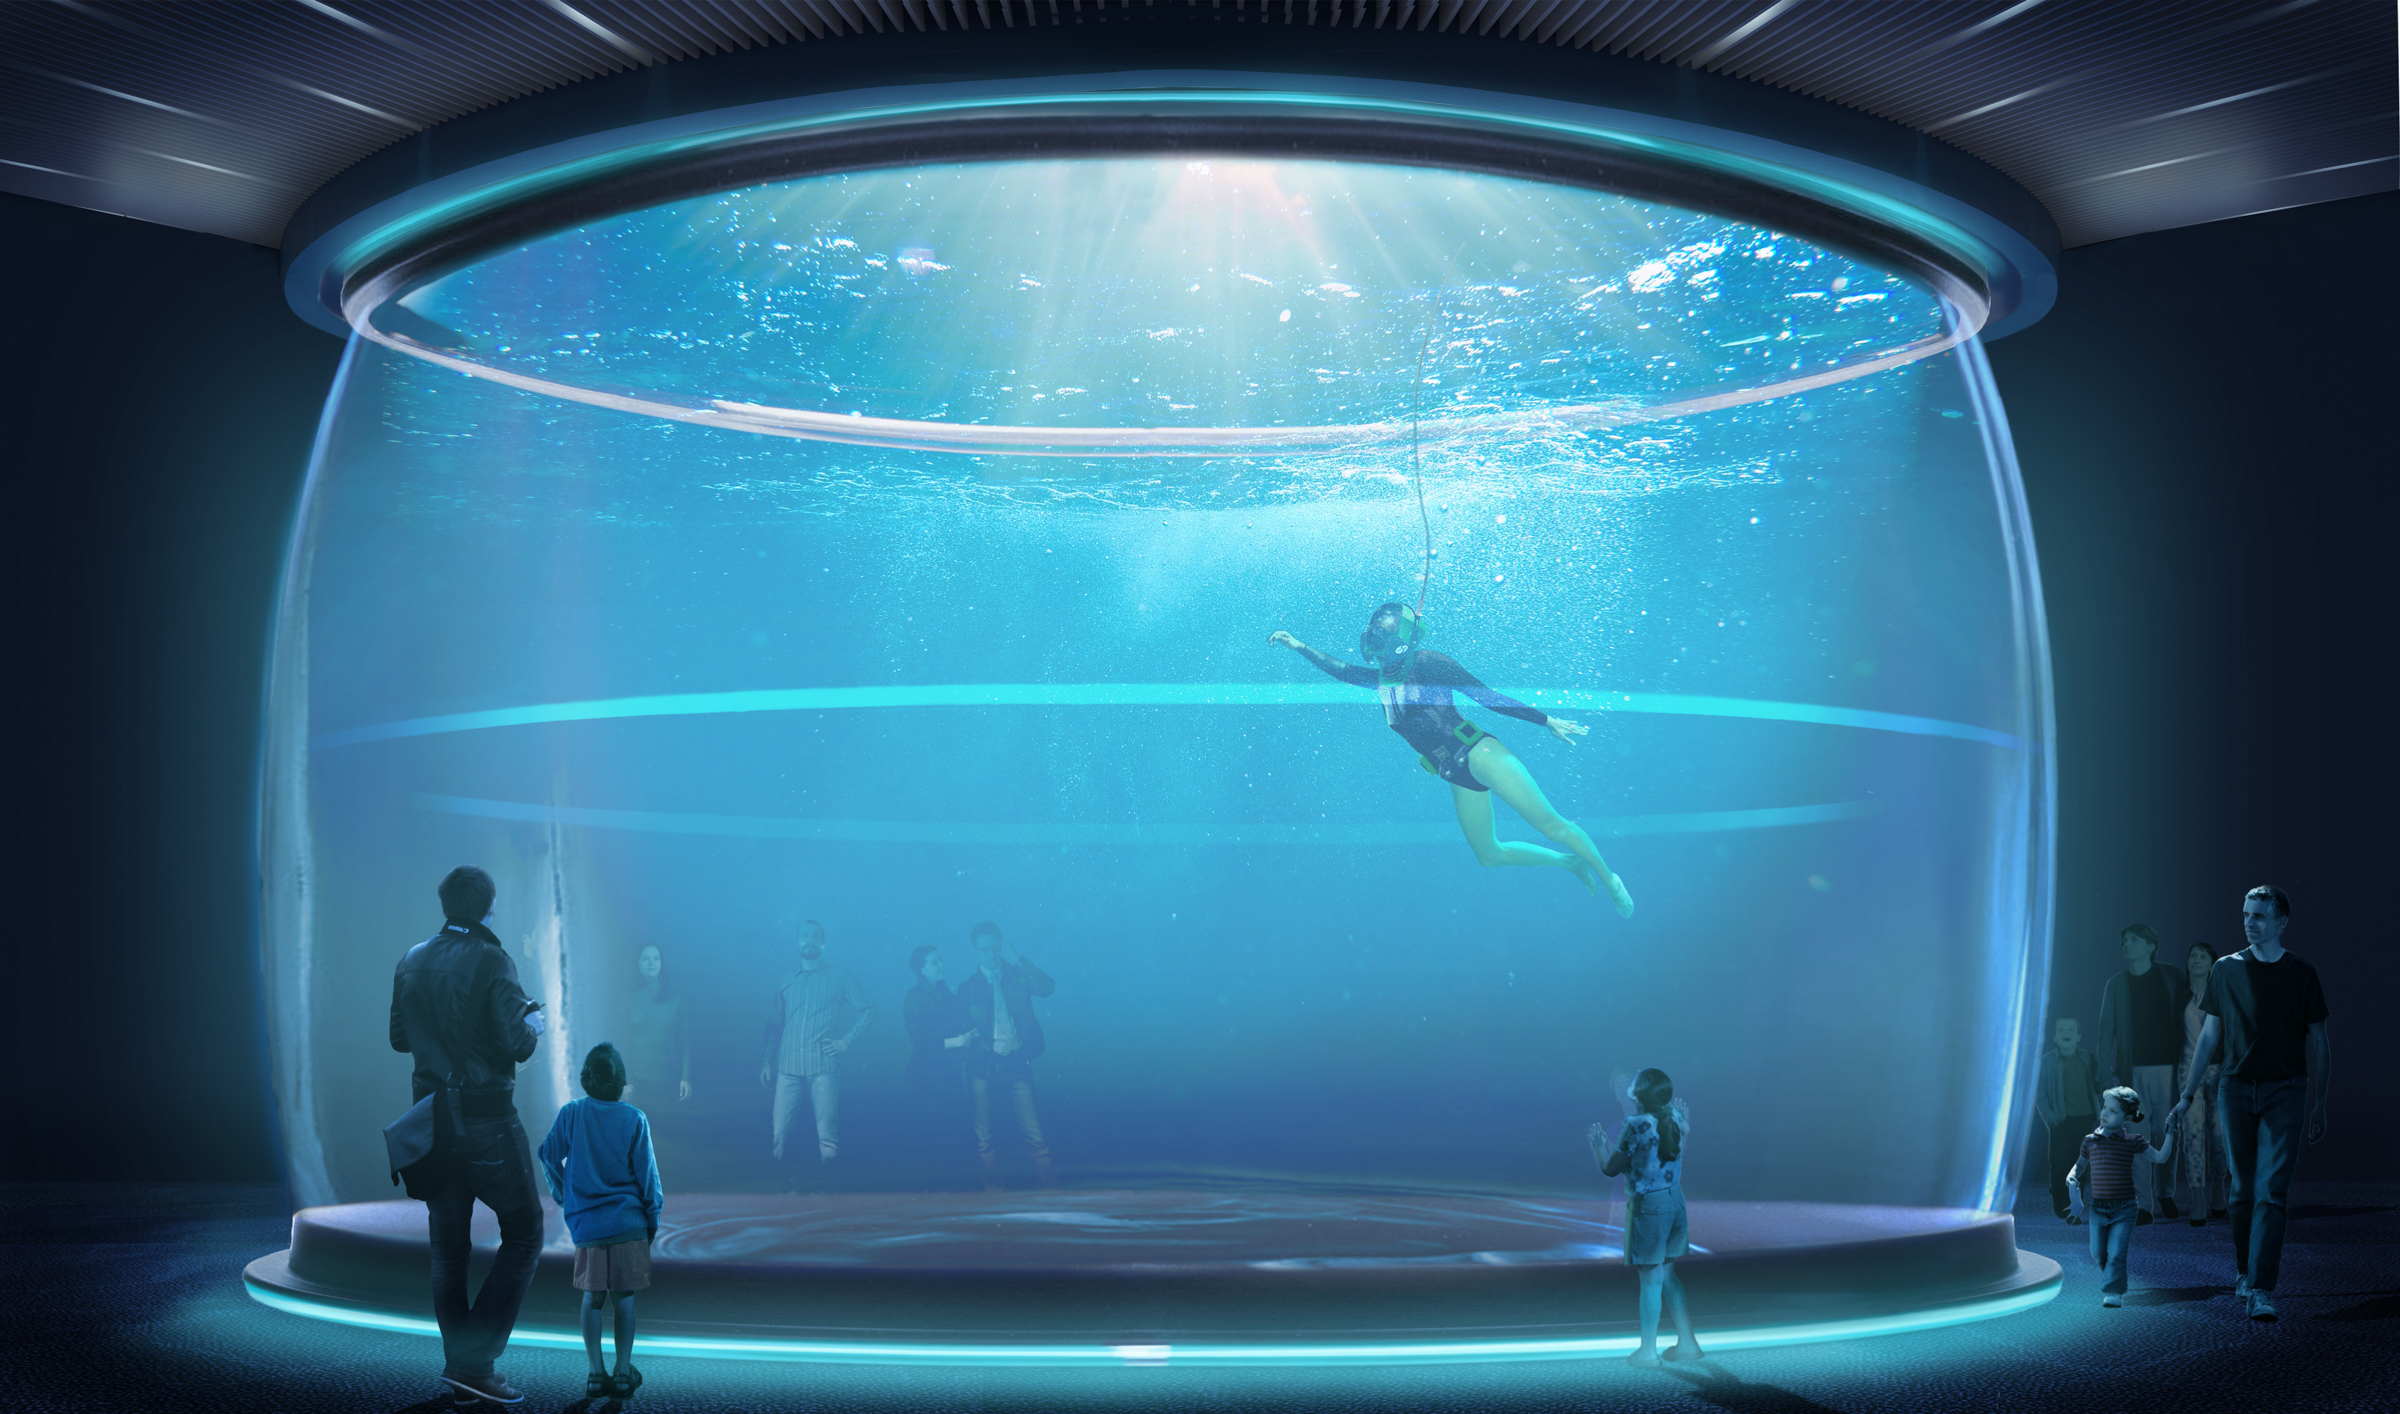 UNDERWATER_VIRTUAL_REALITY_CONCEPT_TI (1).jpg